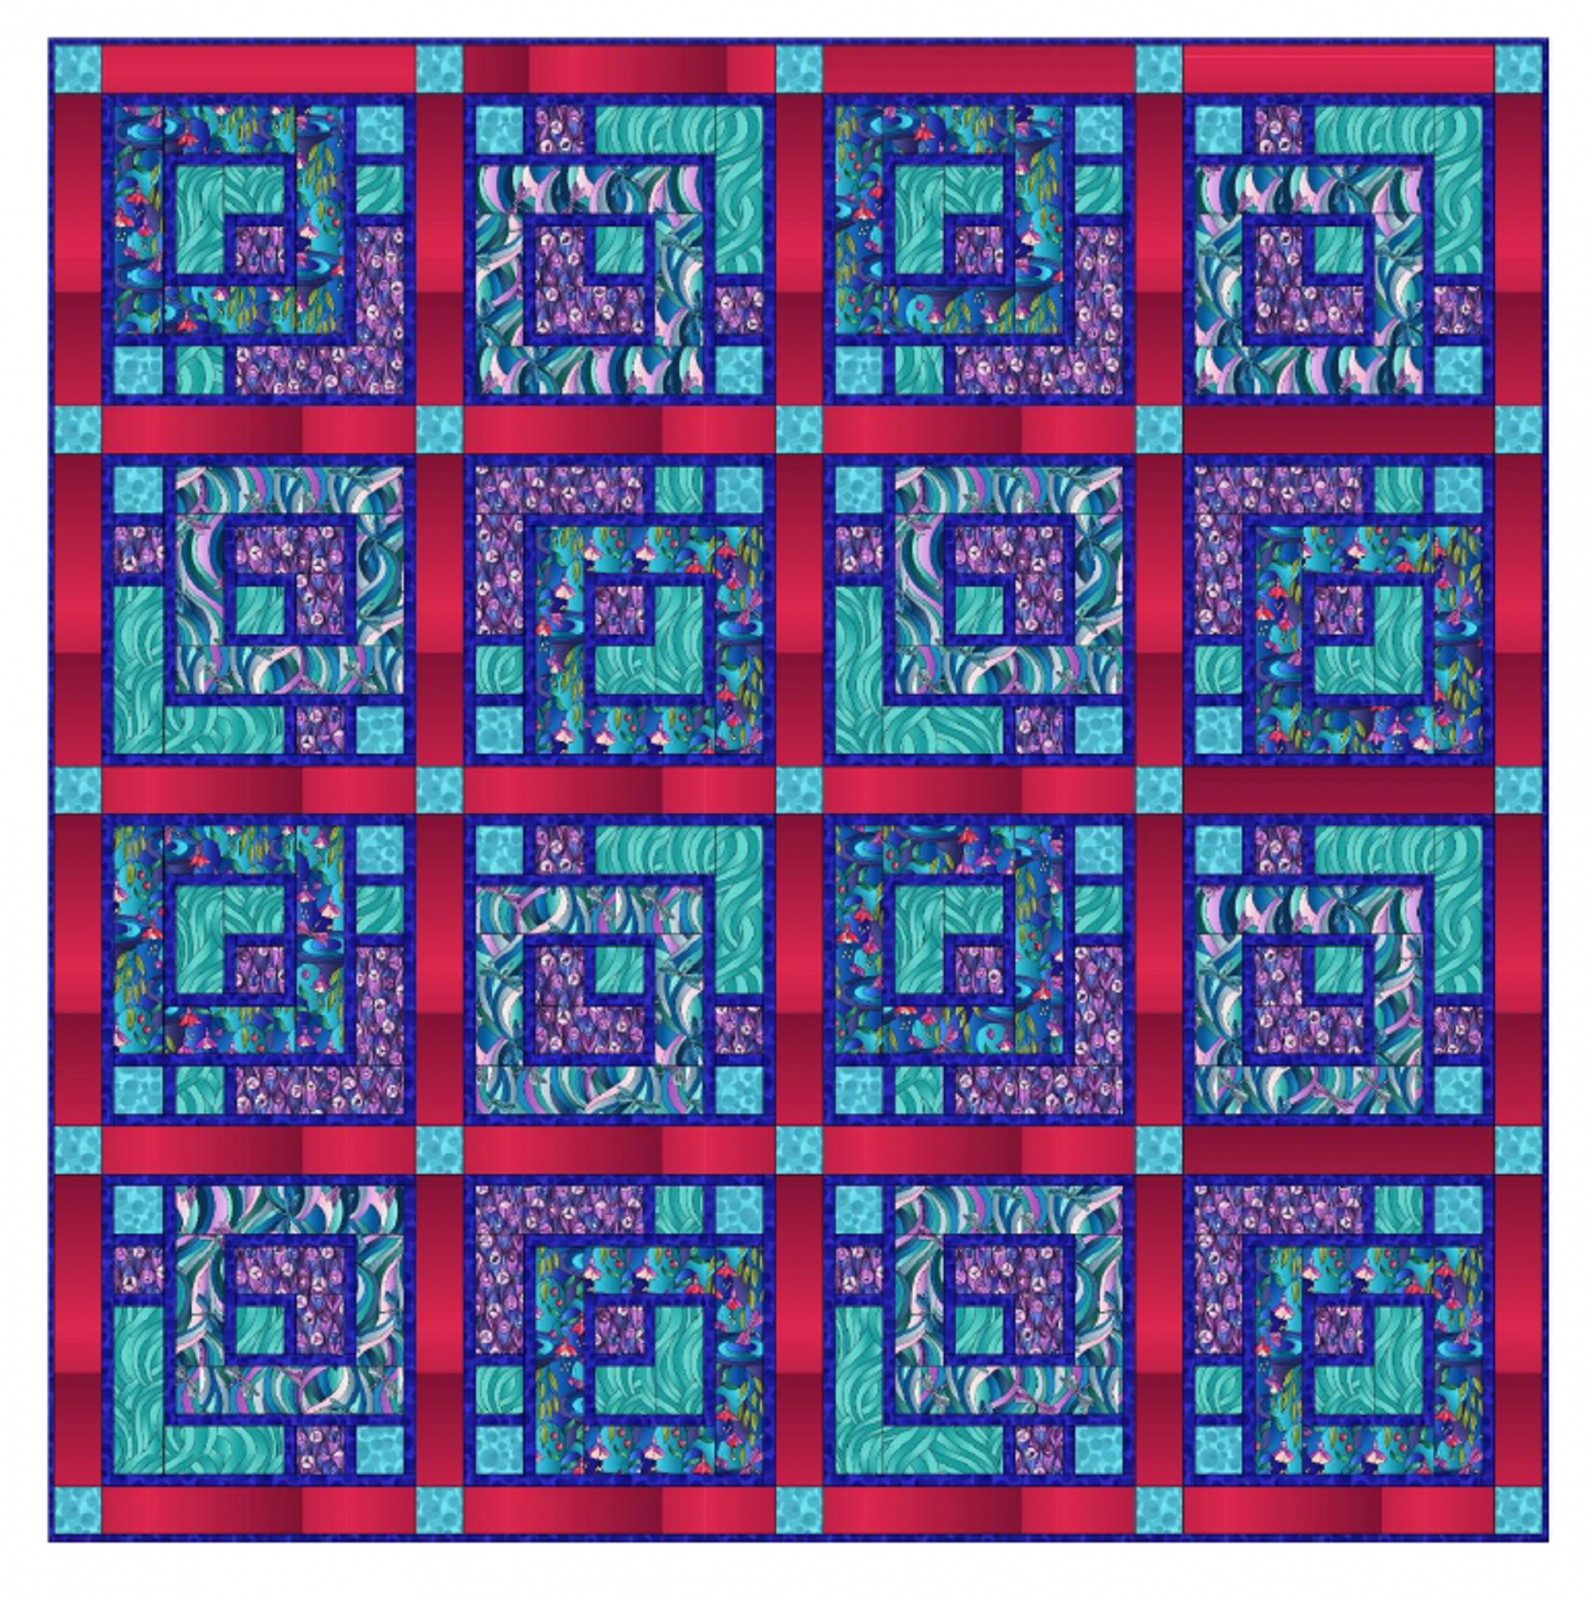 Reflections Quilt - 3 colorways